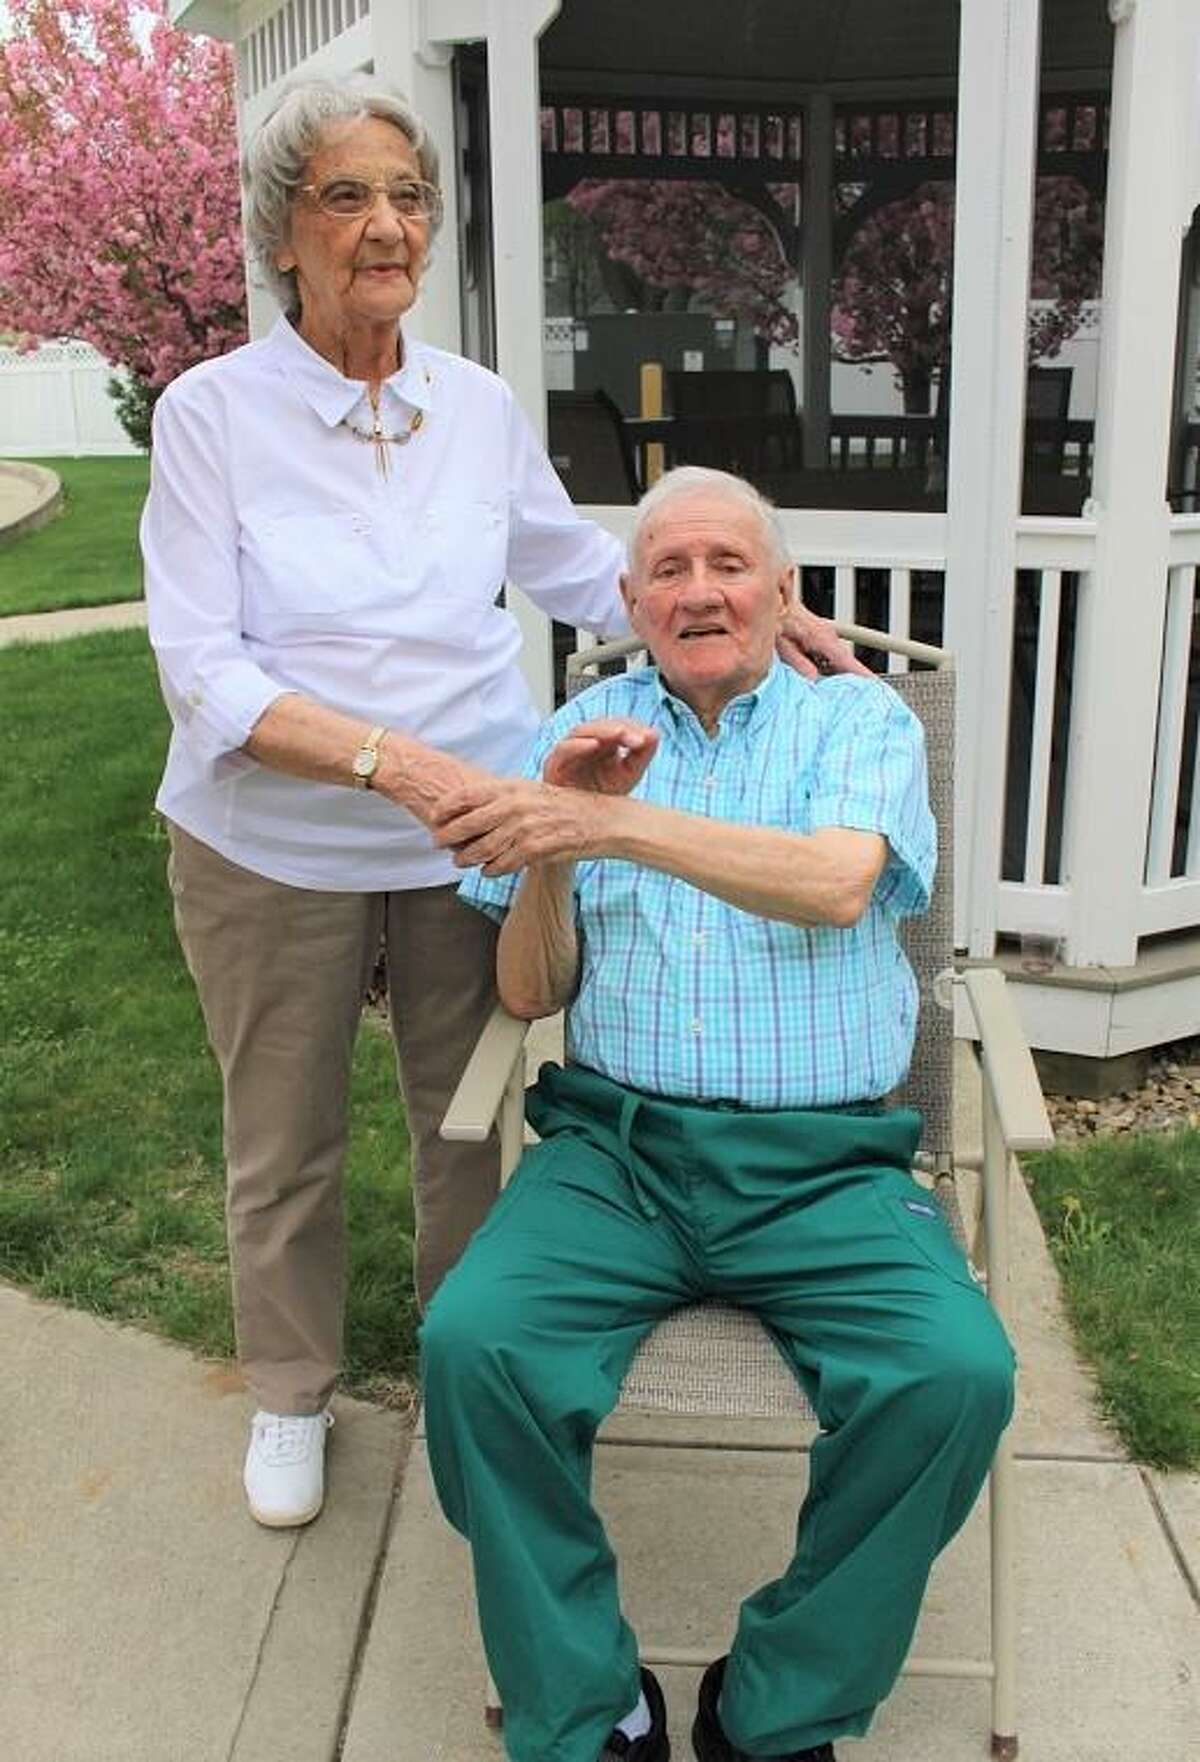 William andDorothyMcCarthyare celebrating their 70th Wedding anniversary.